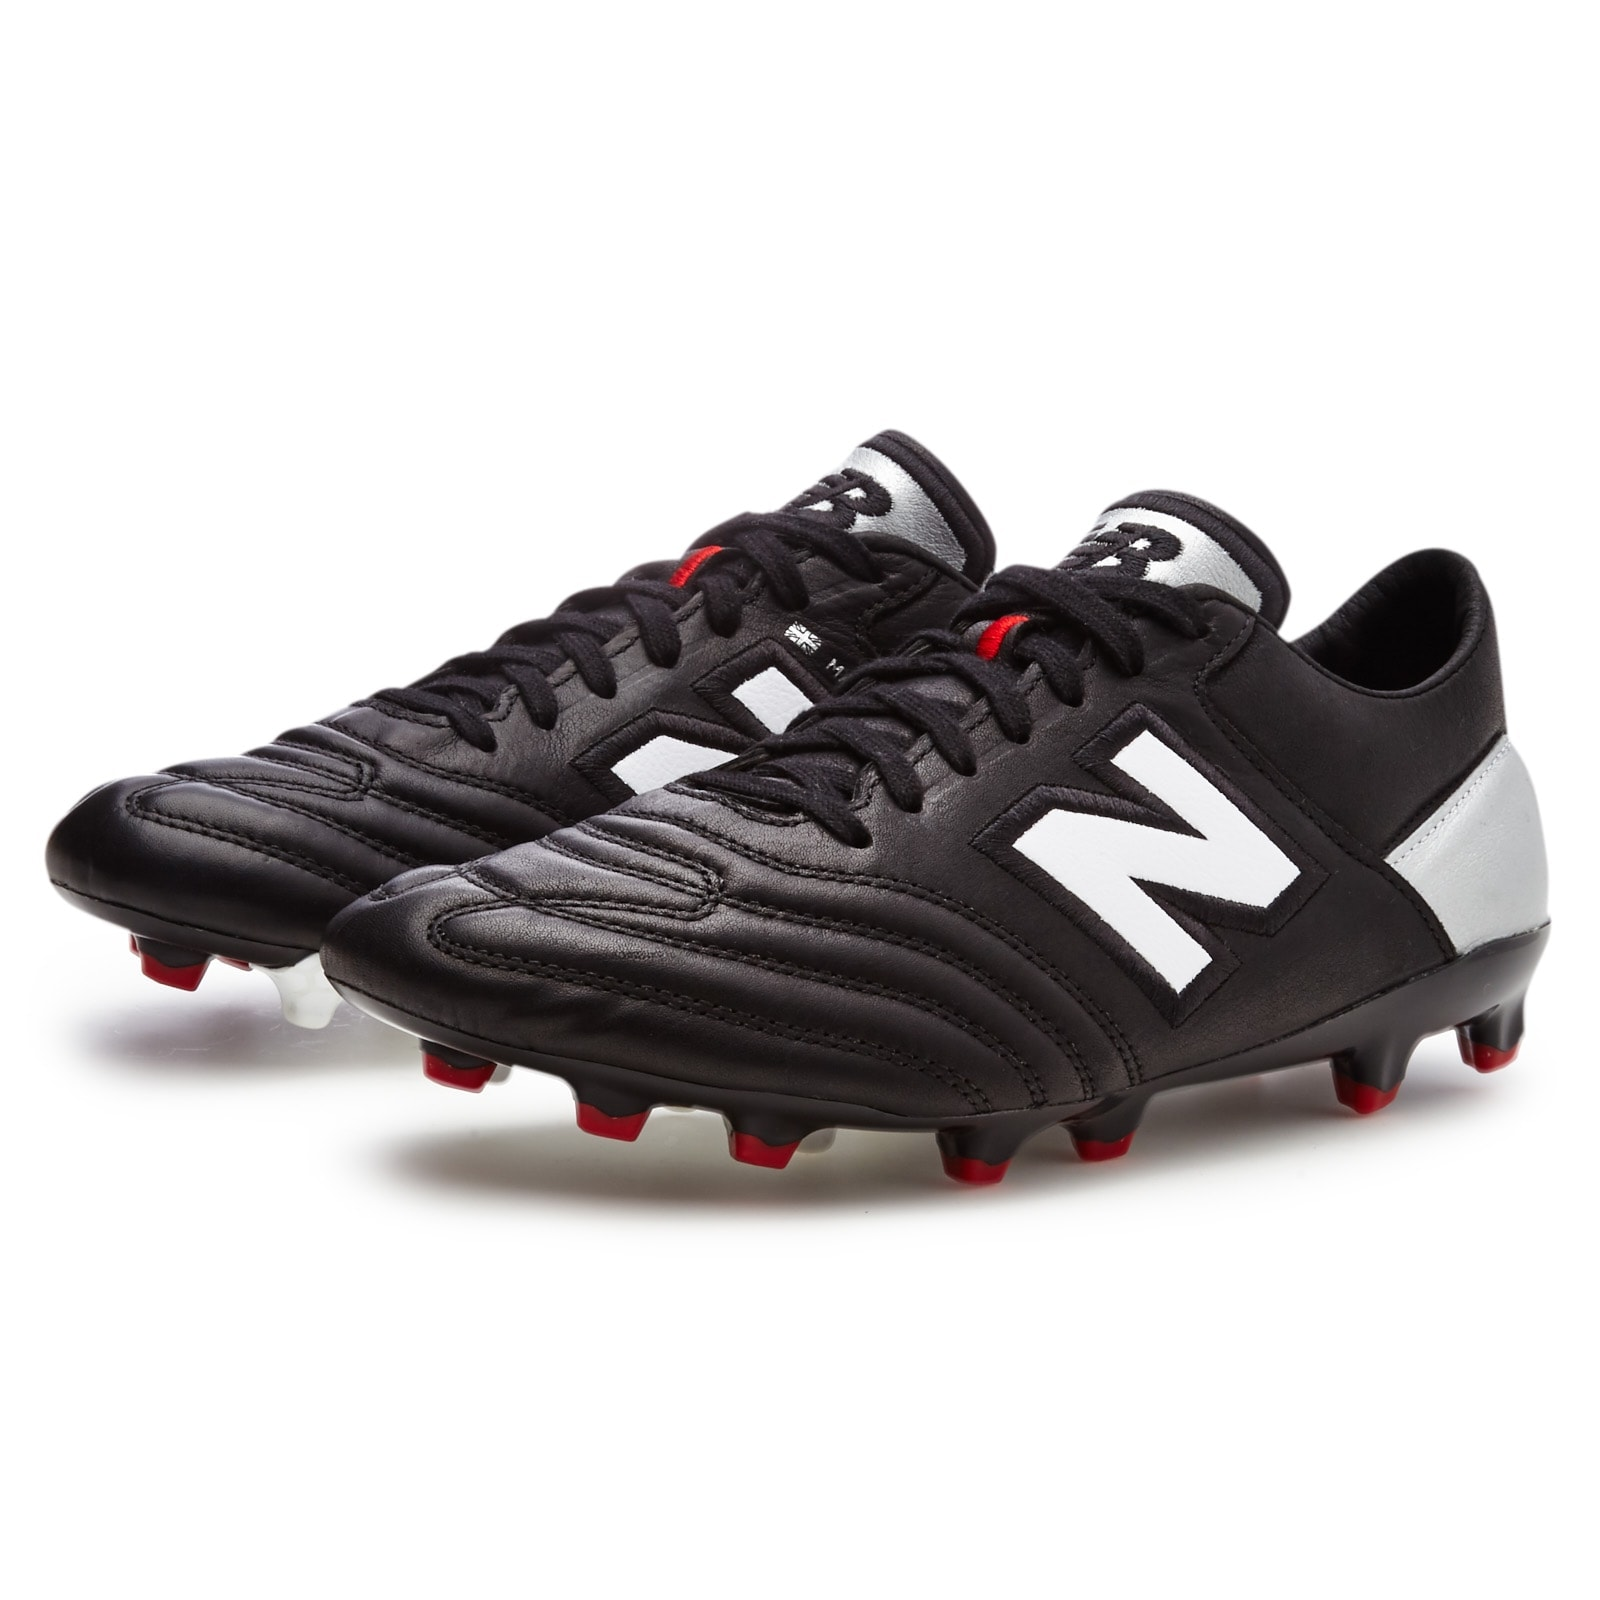 New Balance Release Classic MiUK ONE Boots